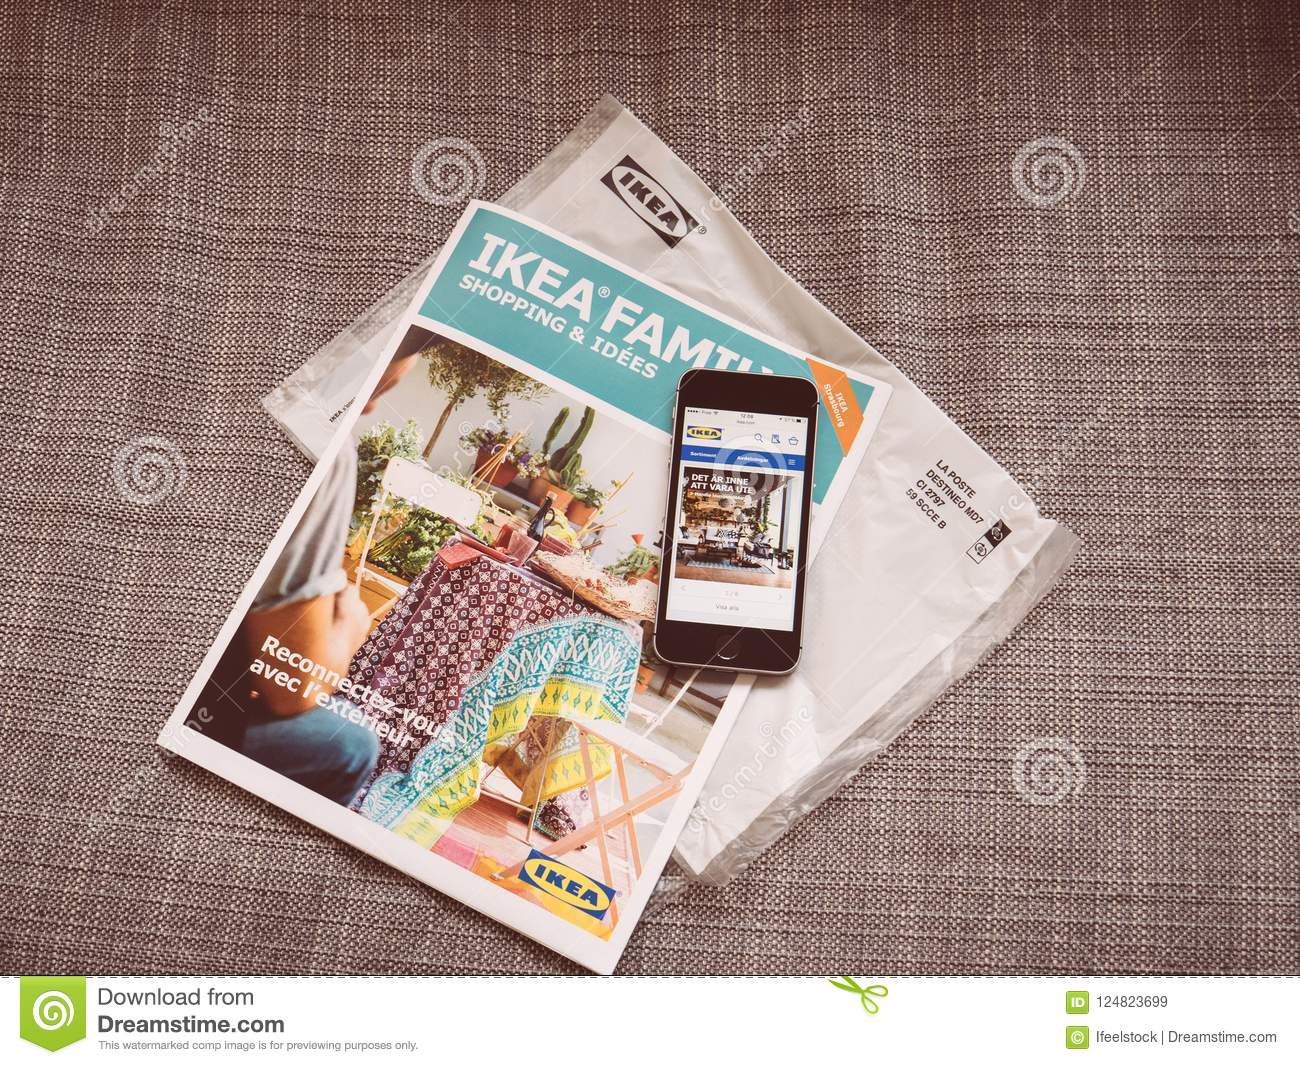 Ikea Family Monthly Catalogue And Smartphone With Ikea Website